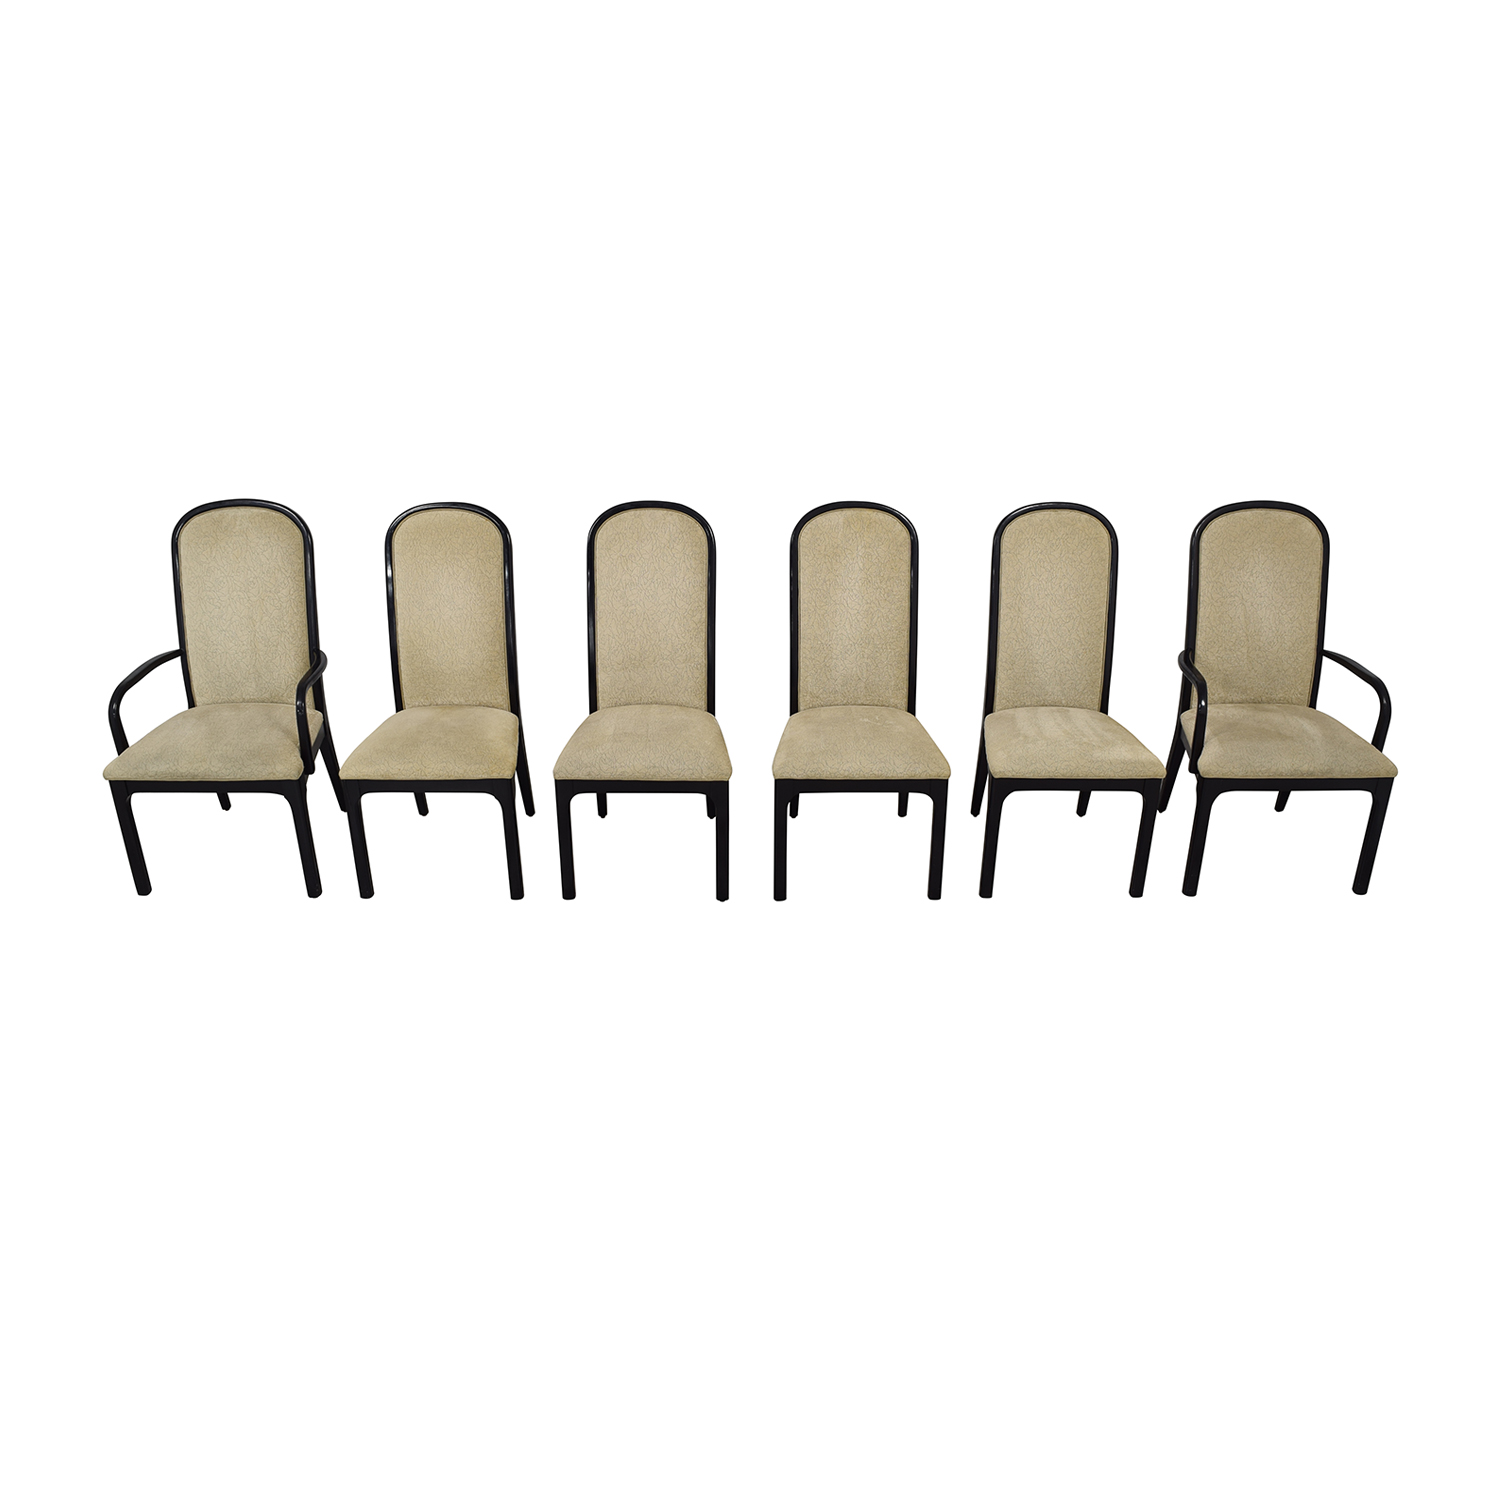 Baker Furniture Baker Furniture Upholstered Dining Chairs price